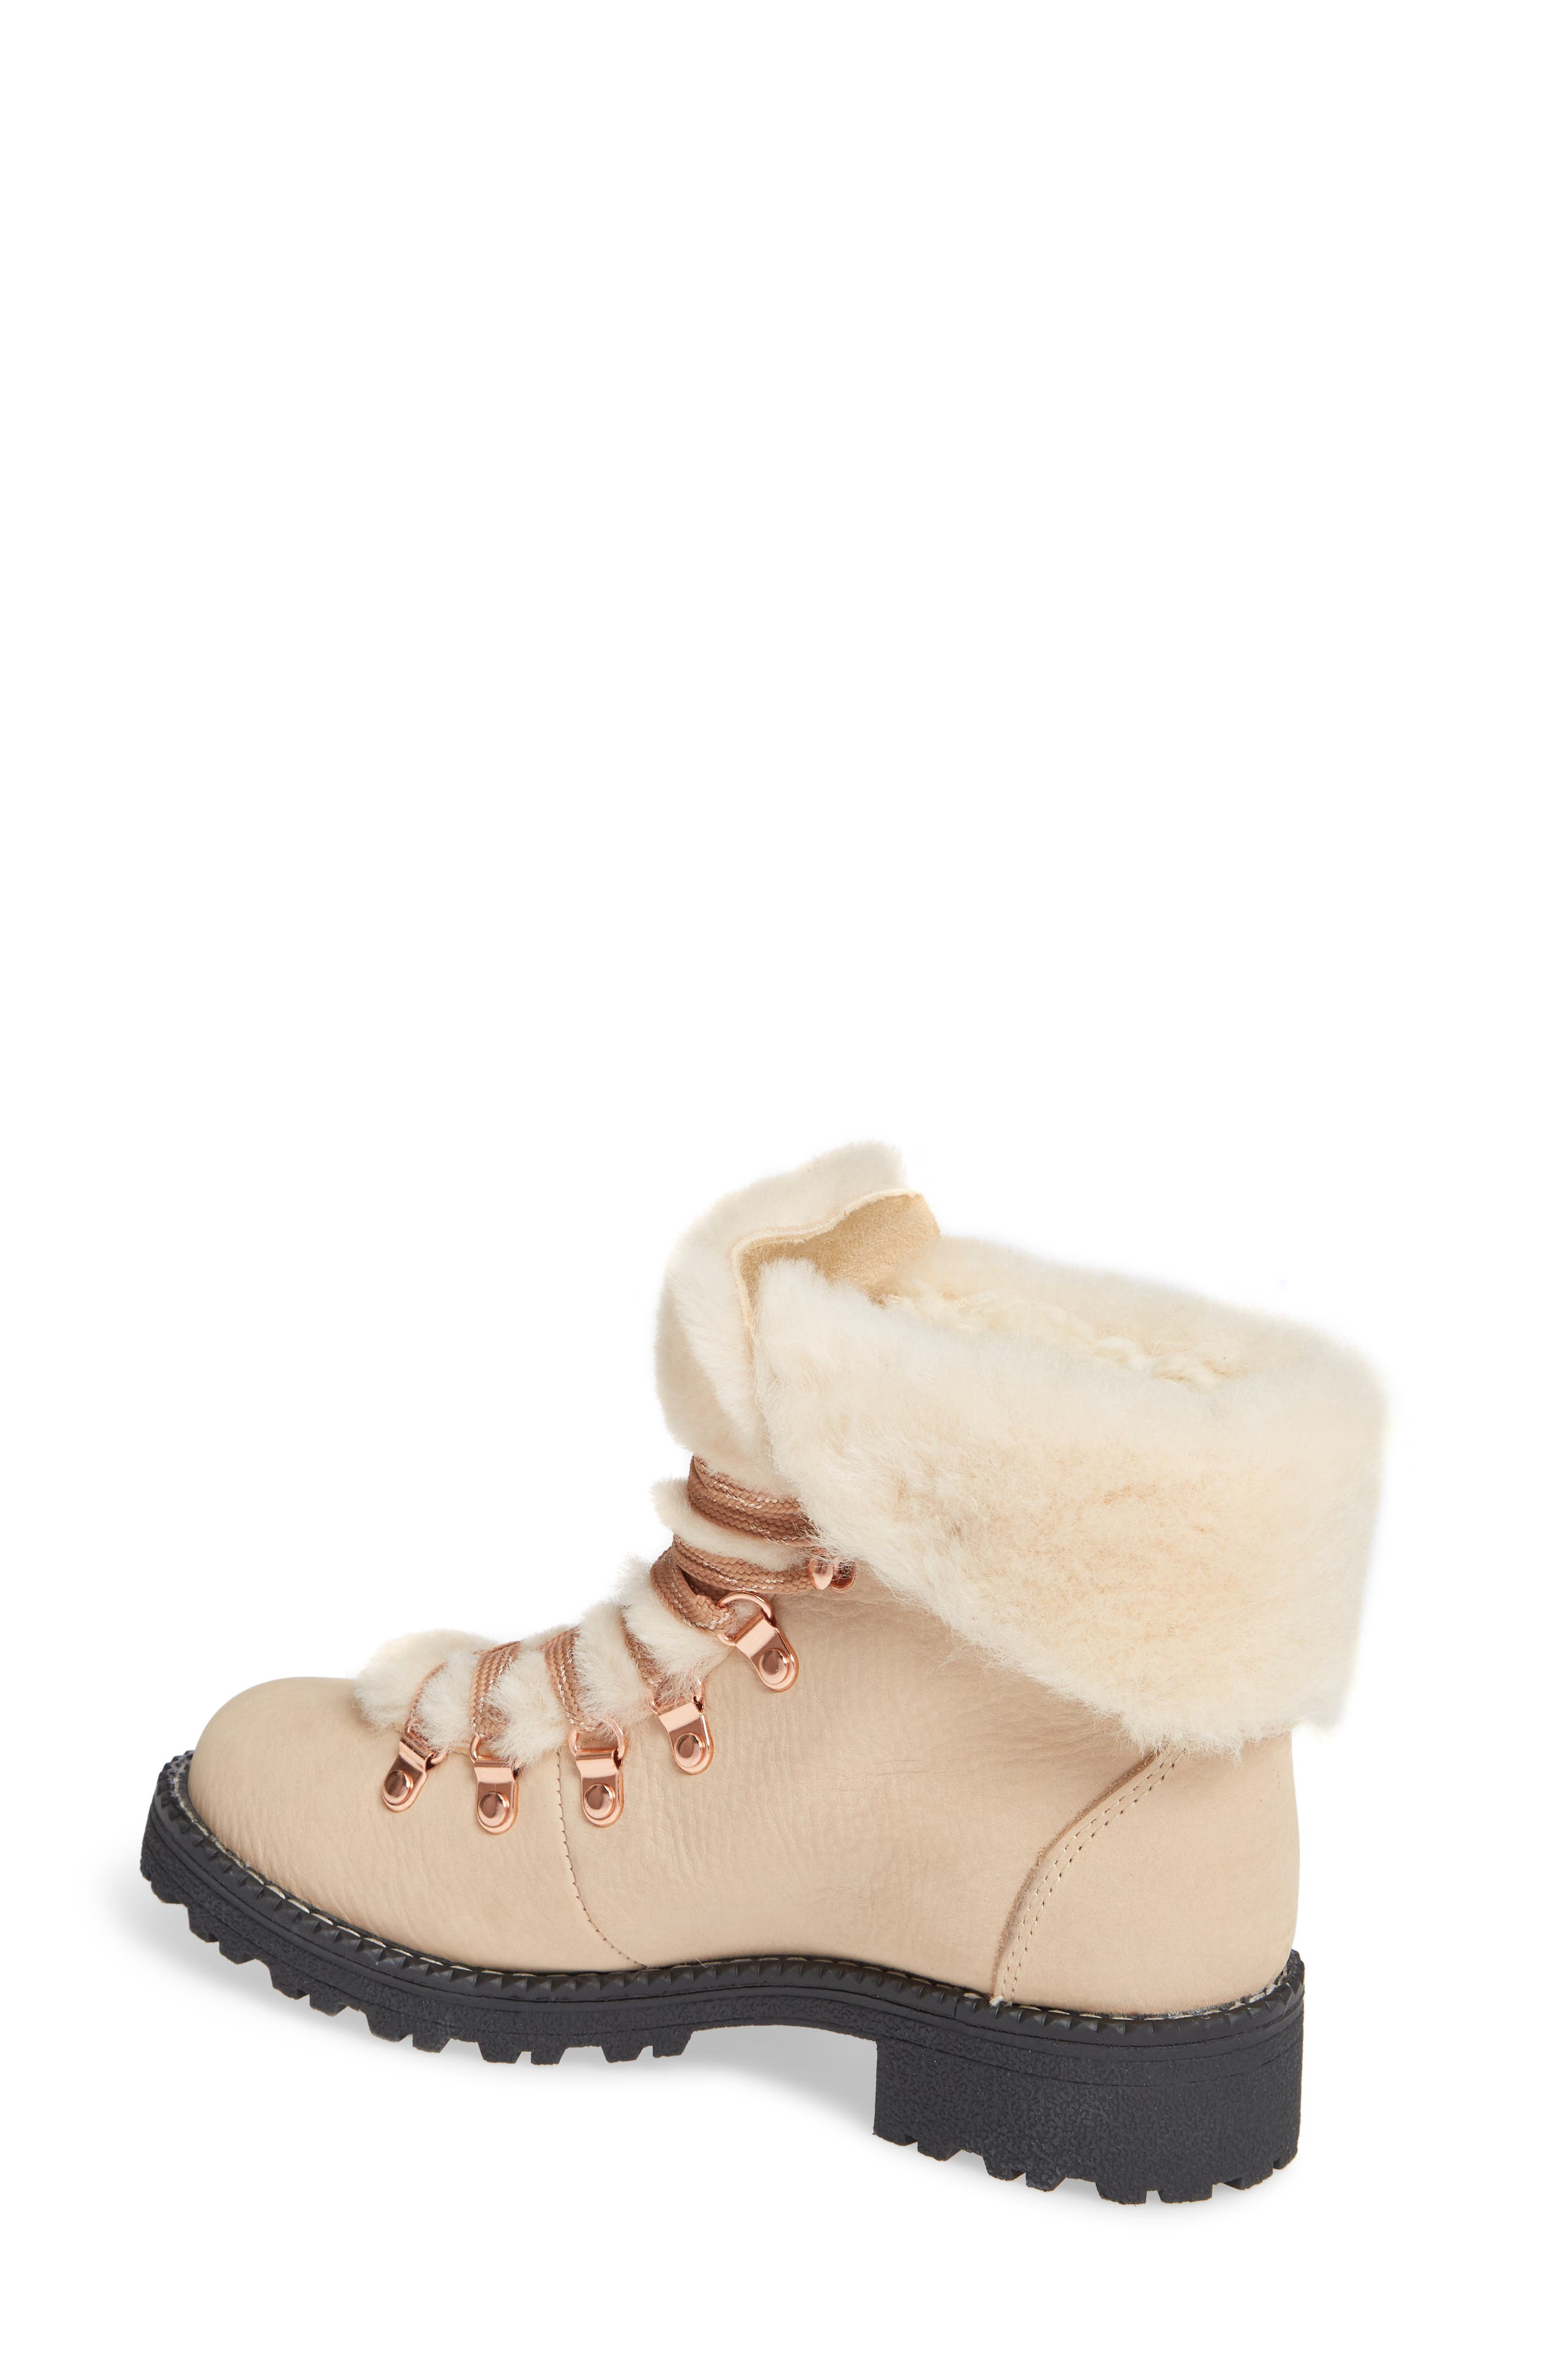 J.CREW, Nordic Genuine Shearling Cuff Winter Boot, Alternate thumbnail 2, color, 251